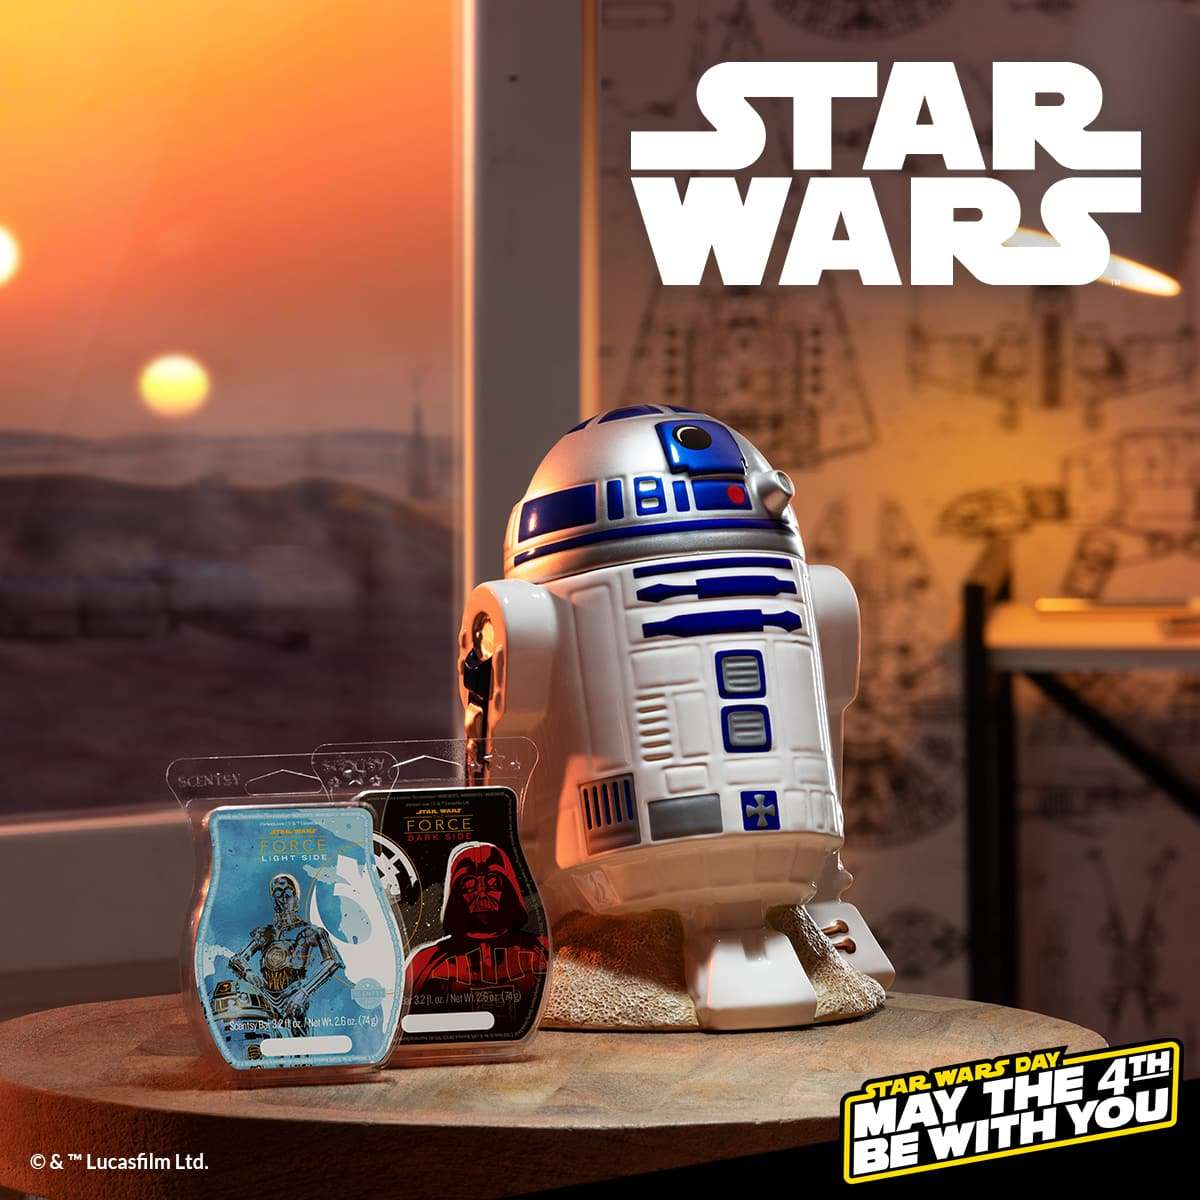 SCENTSY STAR WARS R2D2 WARMER AND SCENTS